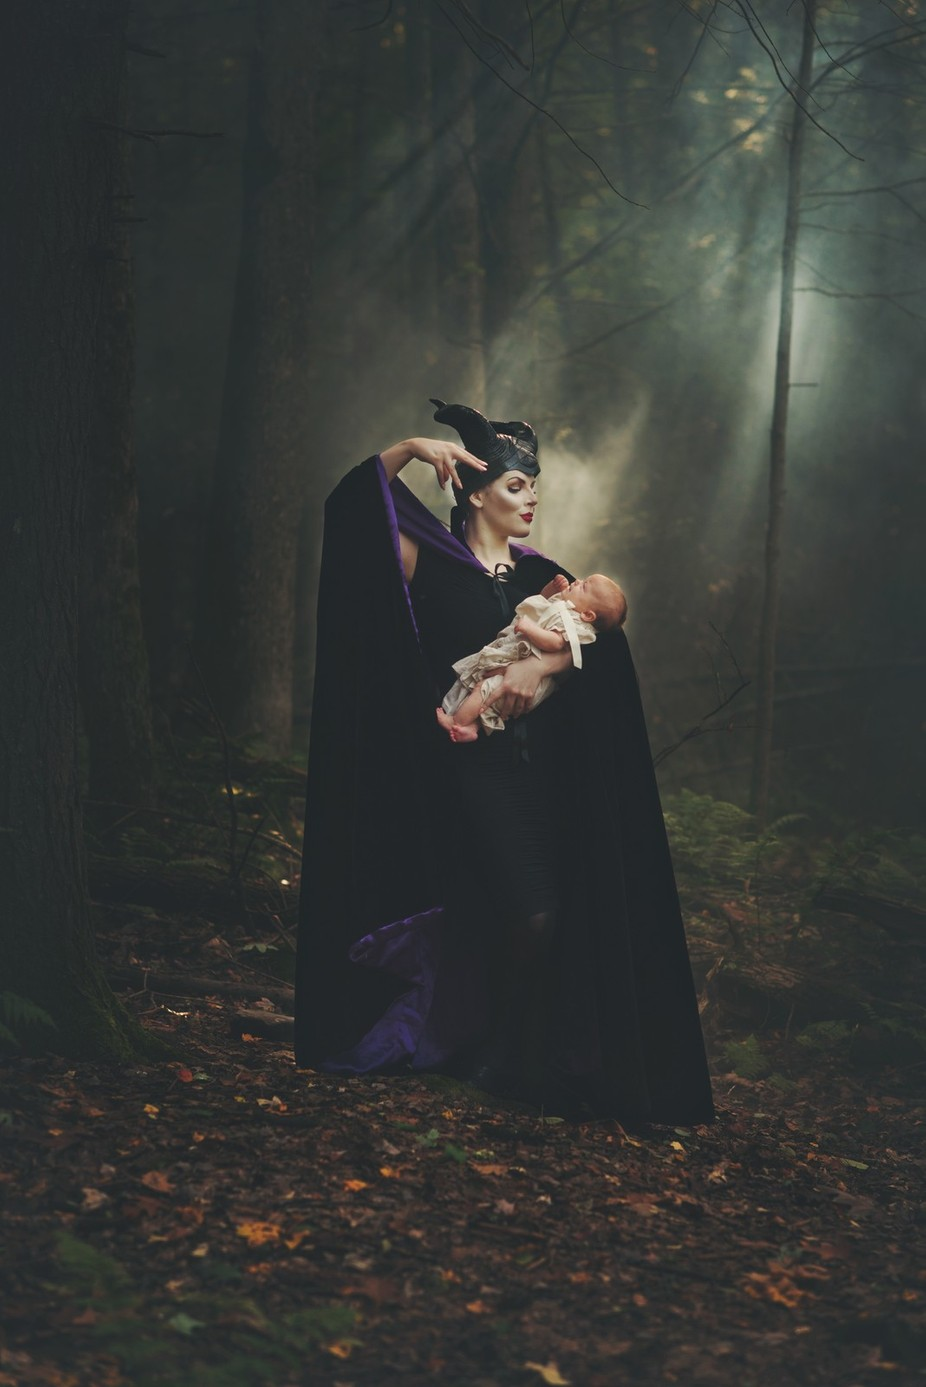 Casting the spell (Maleficent)  by Andreamartinphoto - Fairytale Moments Photo Contest